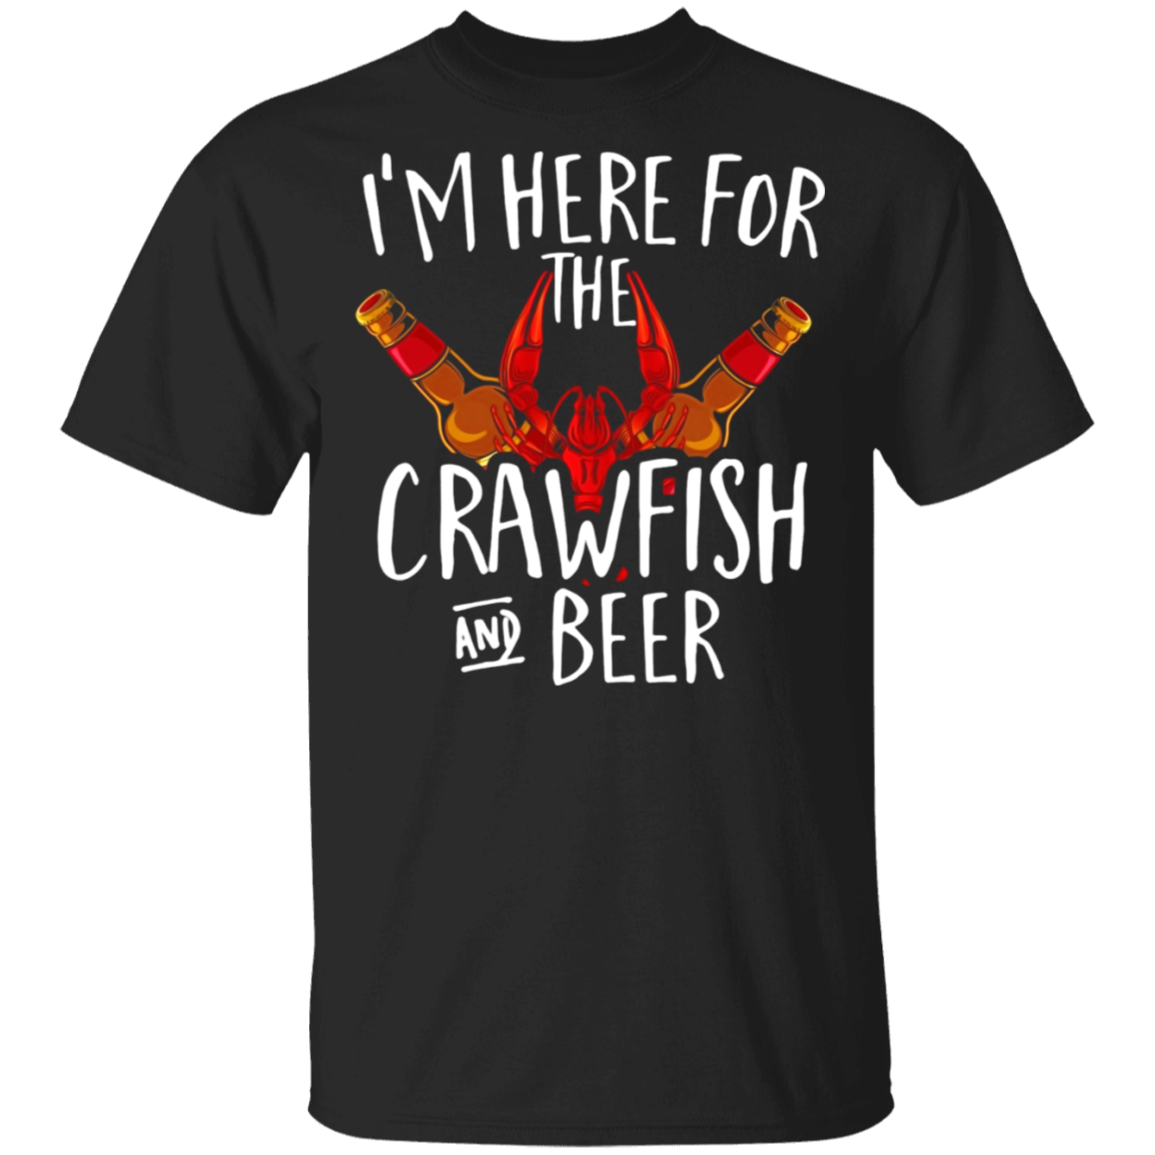 I'm Here For The Crawfish And Beer Tshirt Cajun Boil Party